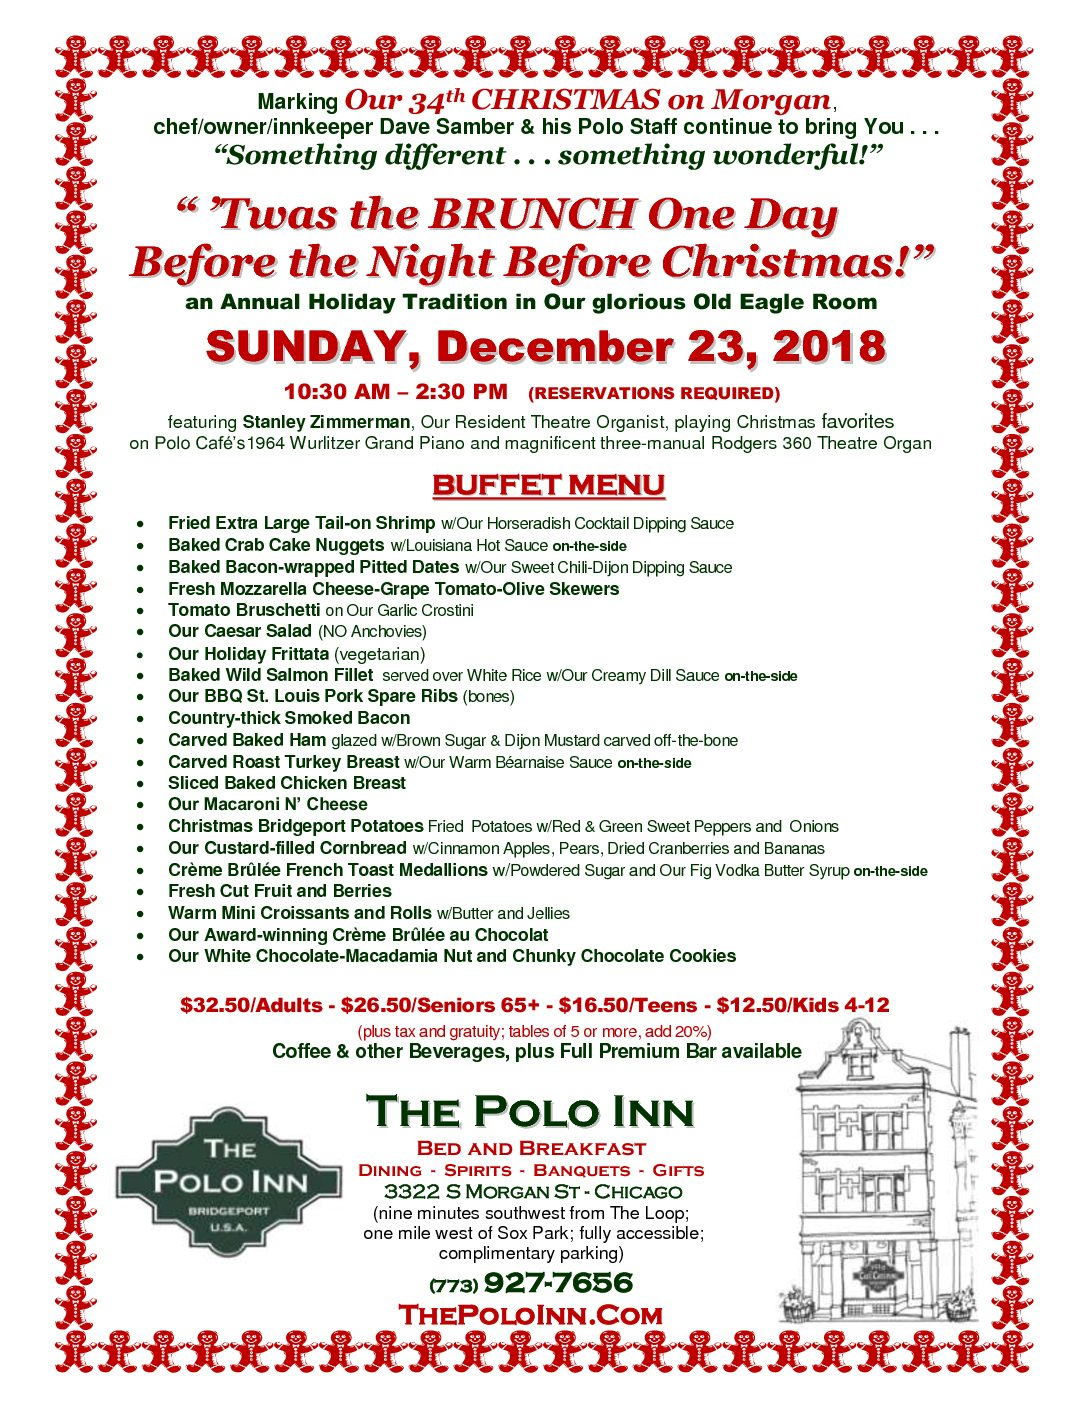 Twas the Brunch 12-23-18 MENU